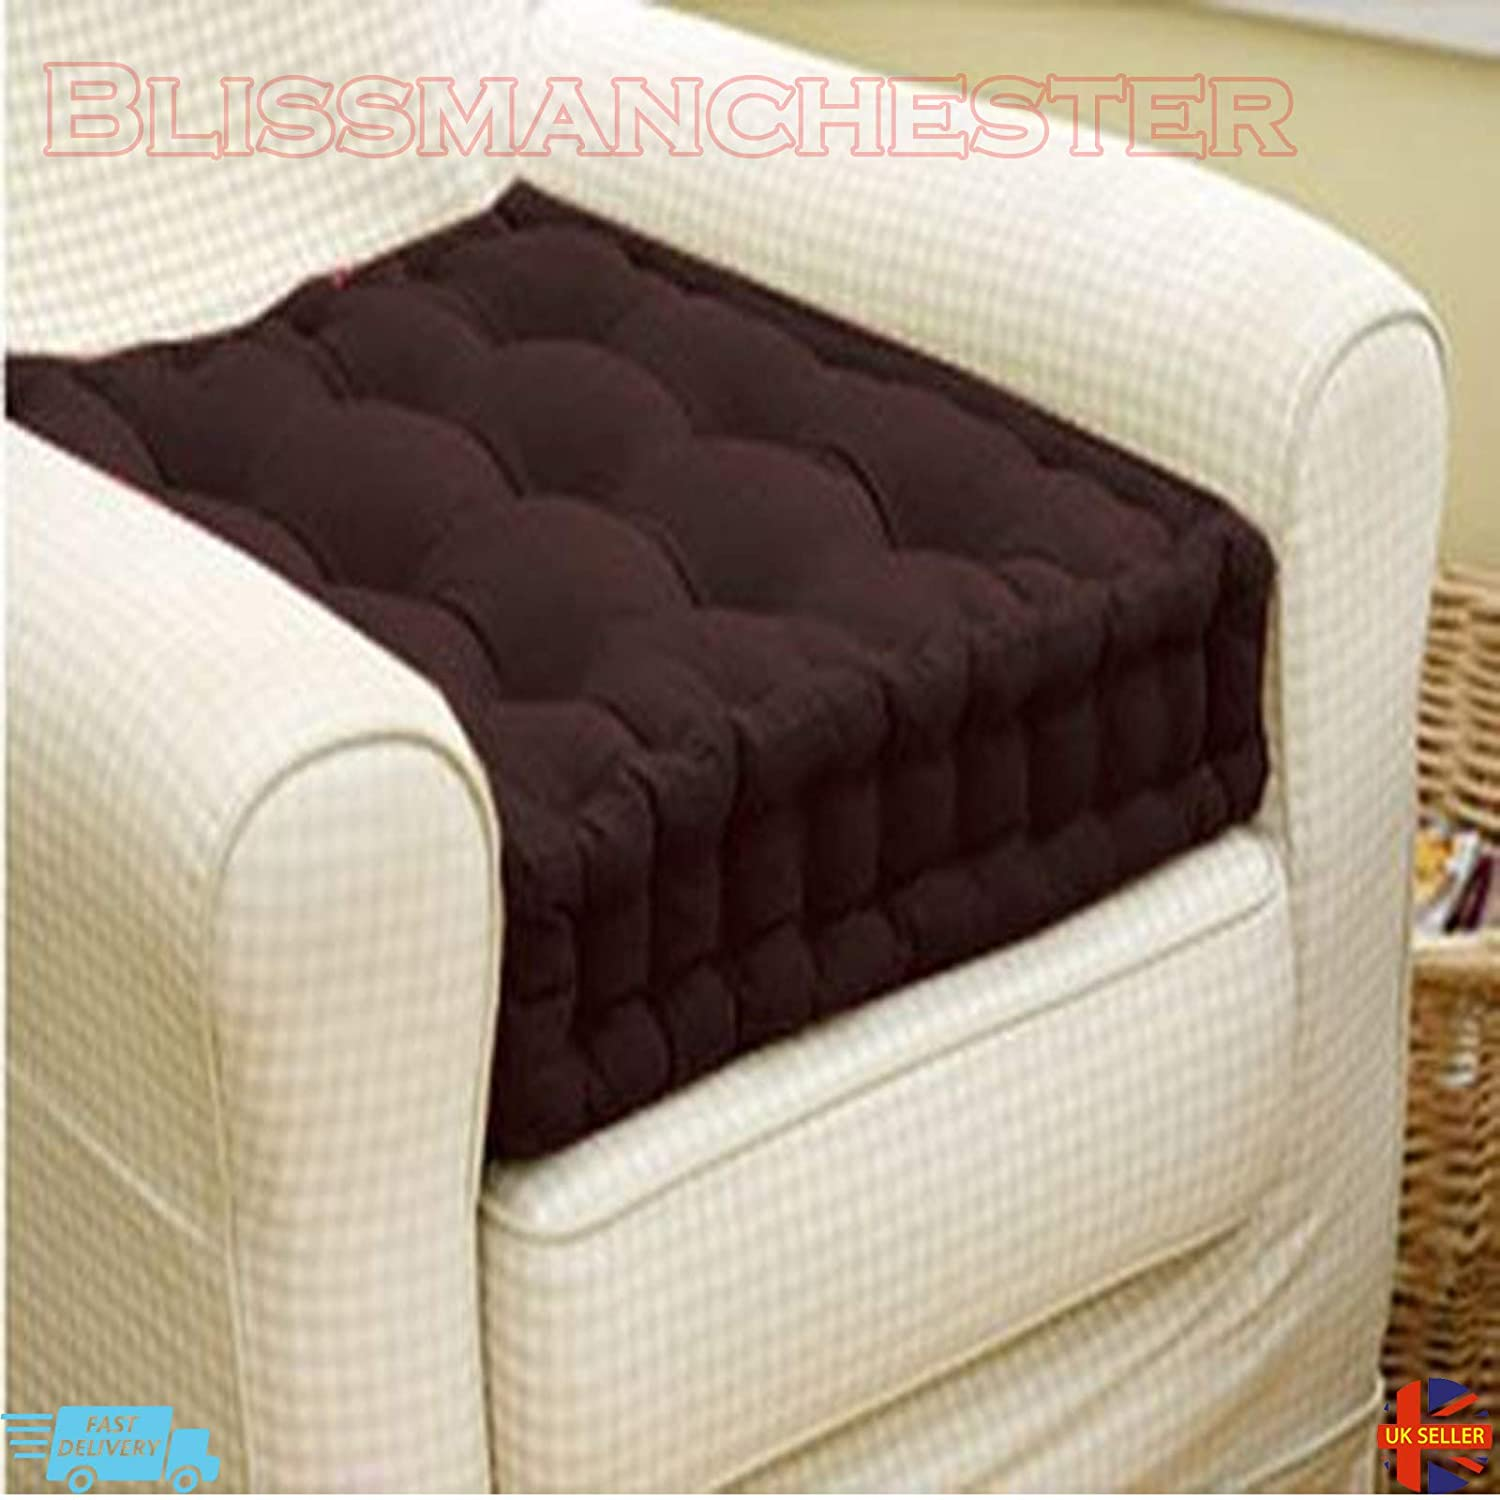 ADULT CHUNKY BOOSTER CUSHION 100/% COTTON CHAIR SEAT PAD FOR SOFA GARDEN MAROON